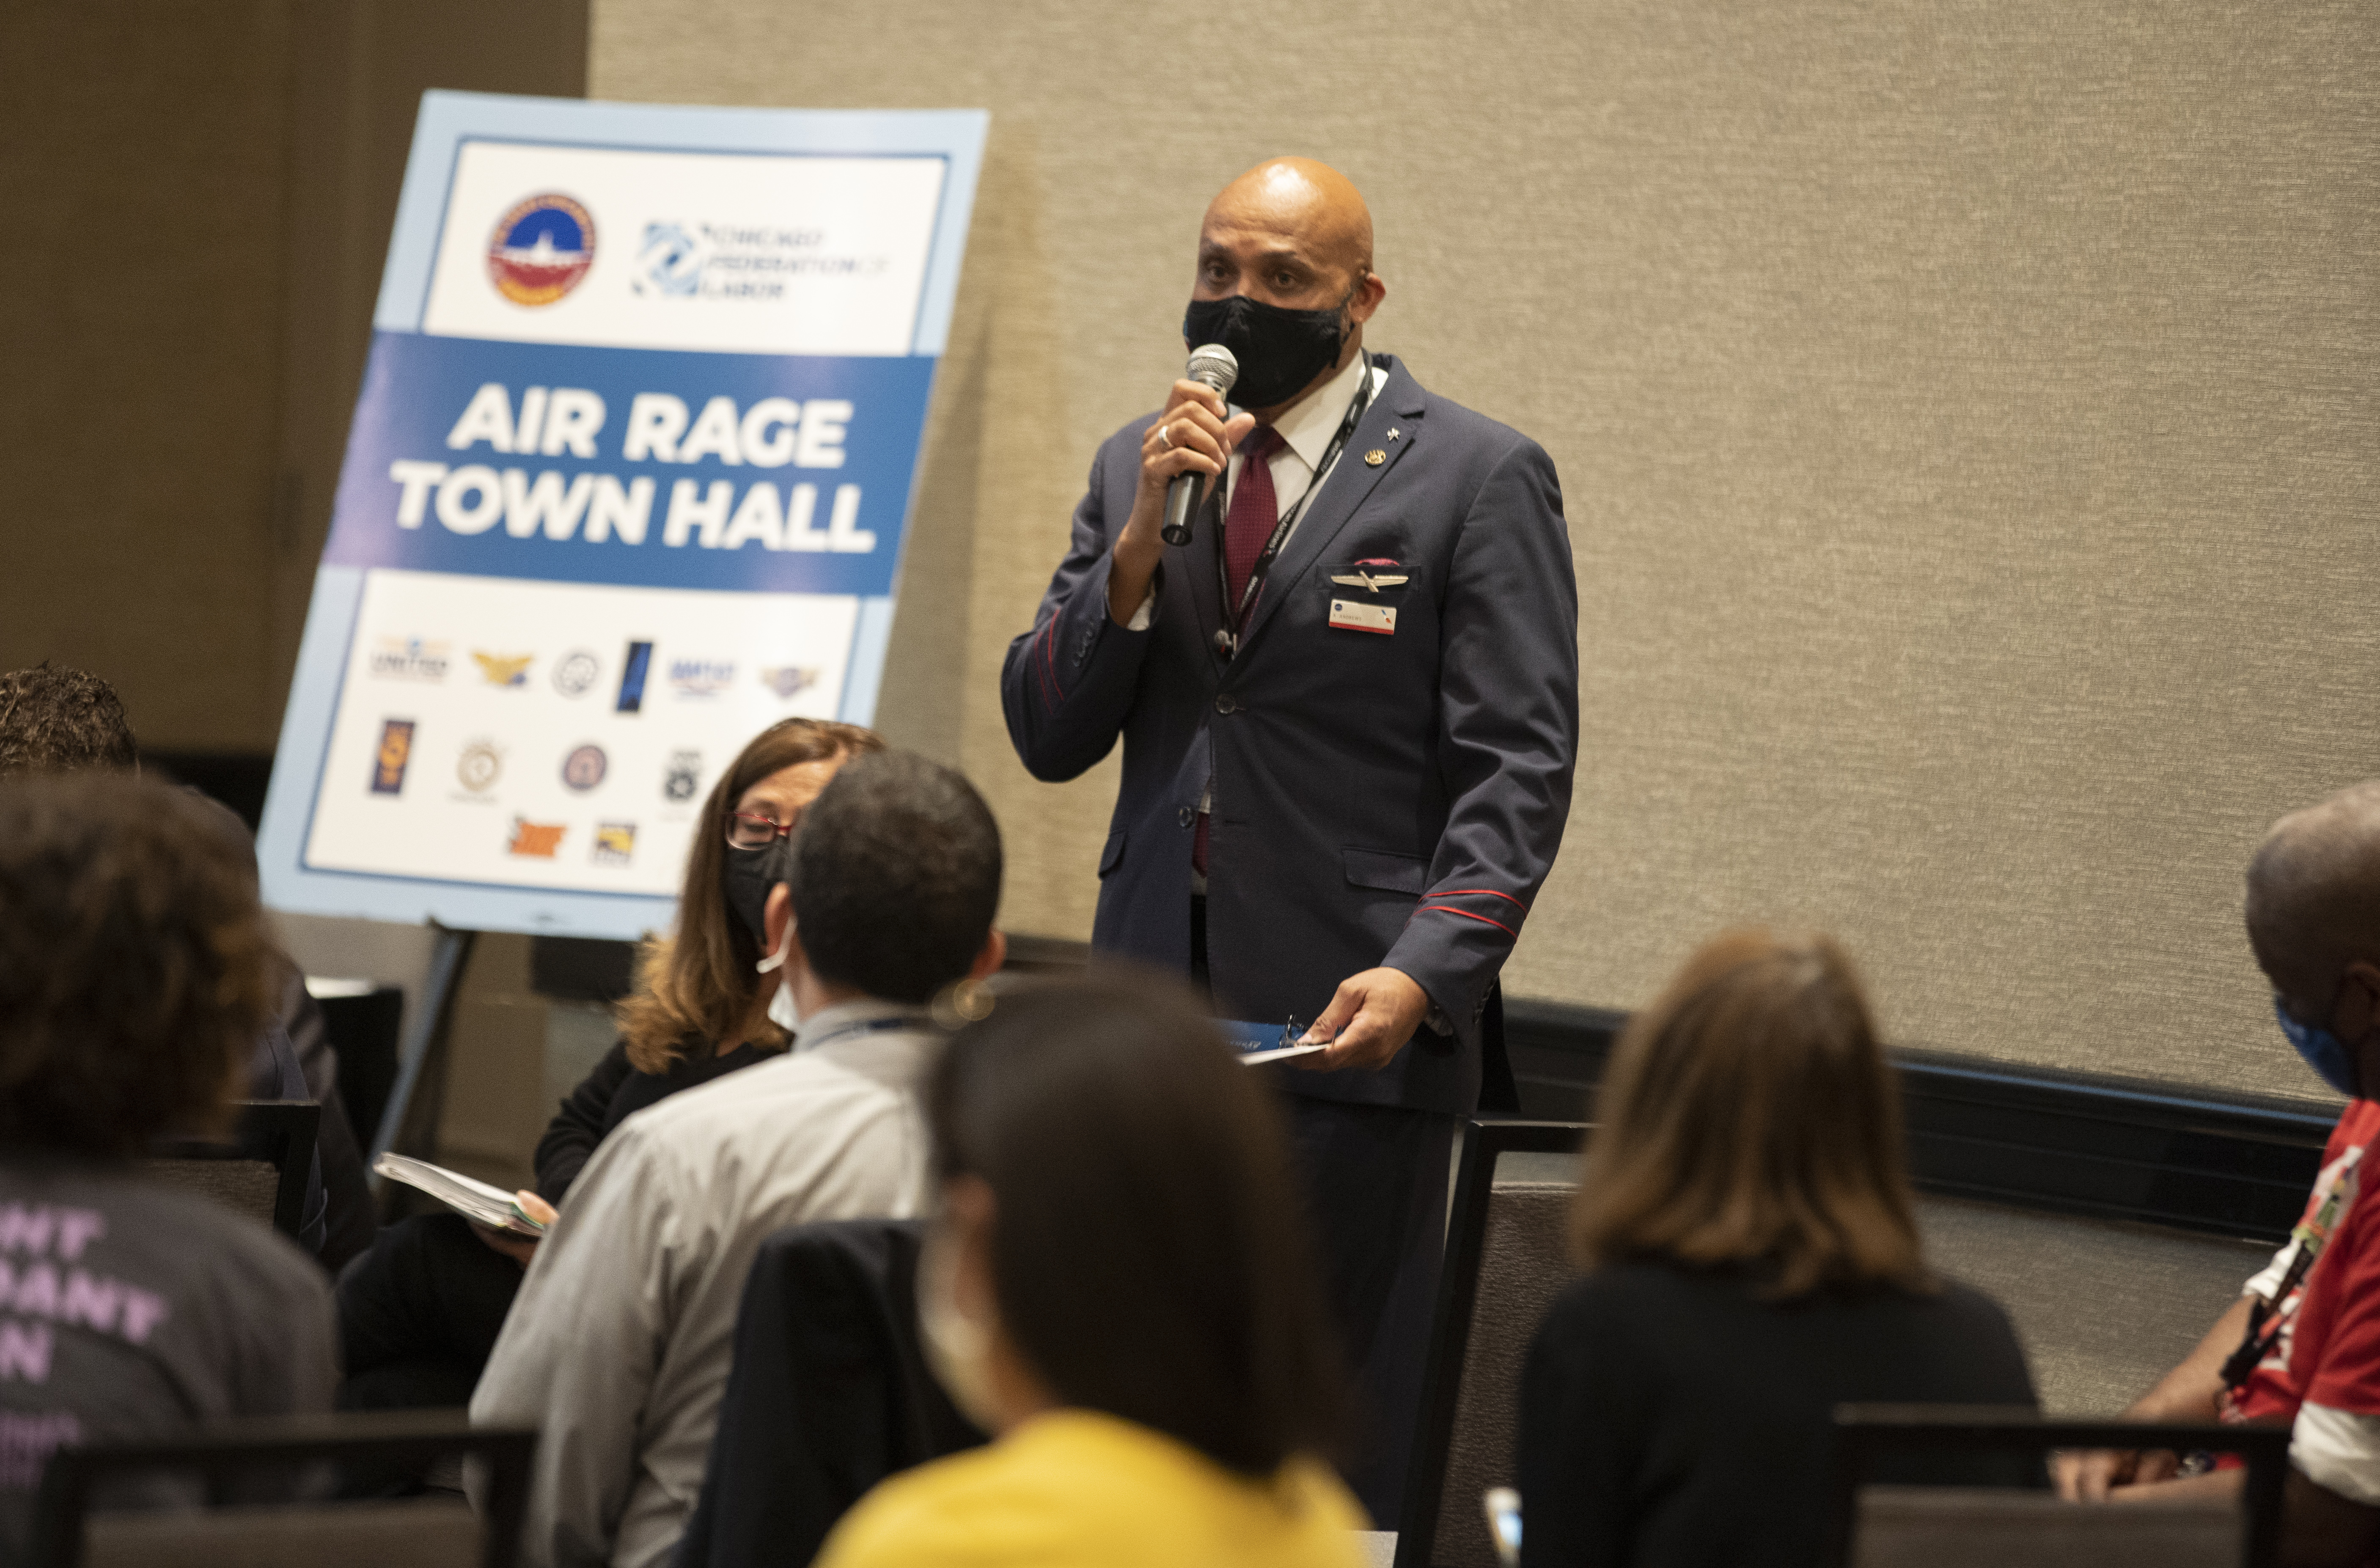 """Flight attendant Teddy Andrews urged Congress to pass legislation that heightens consequences for unruly passengers at Wednesday's """"Air Rage Town Hall"""" at O'Hare International. Andrews speaks about his experiences with unruly passengers at the Air Rage Town Hall."""